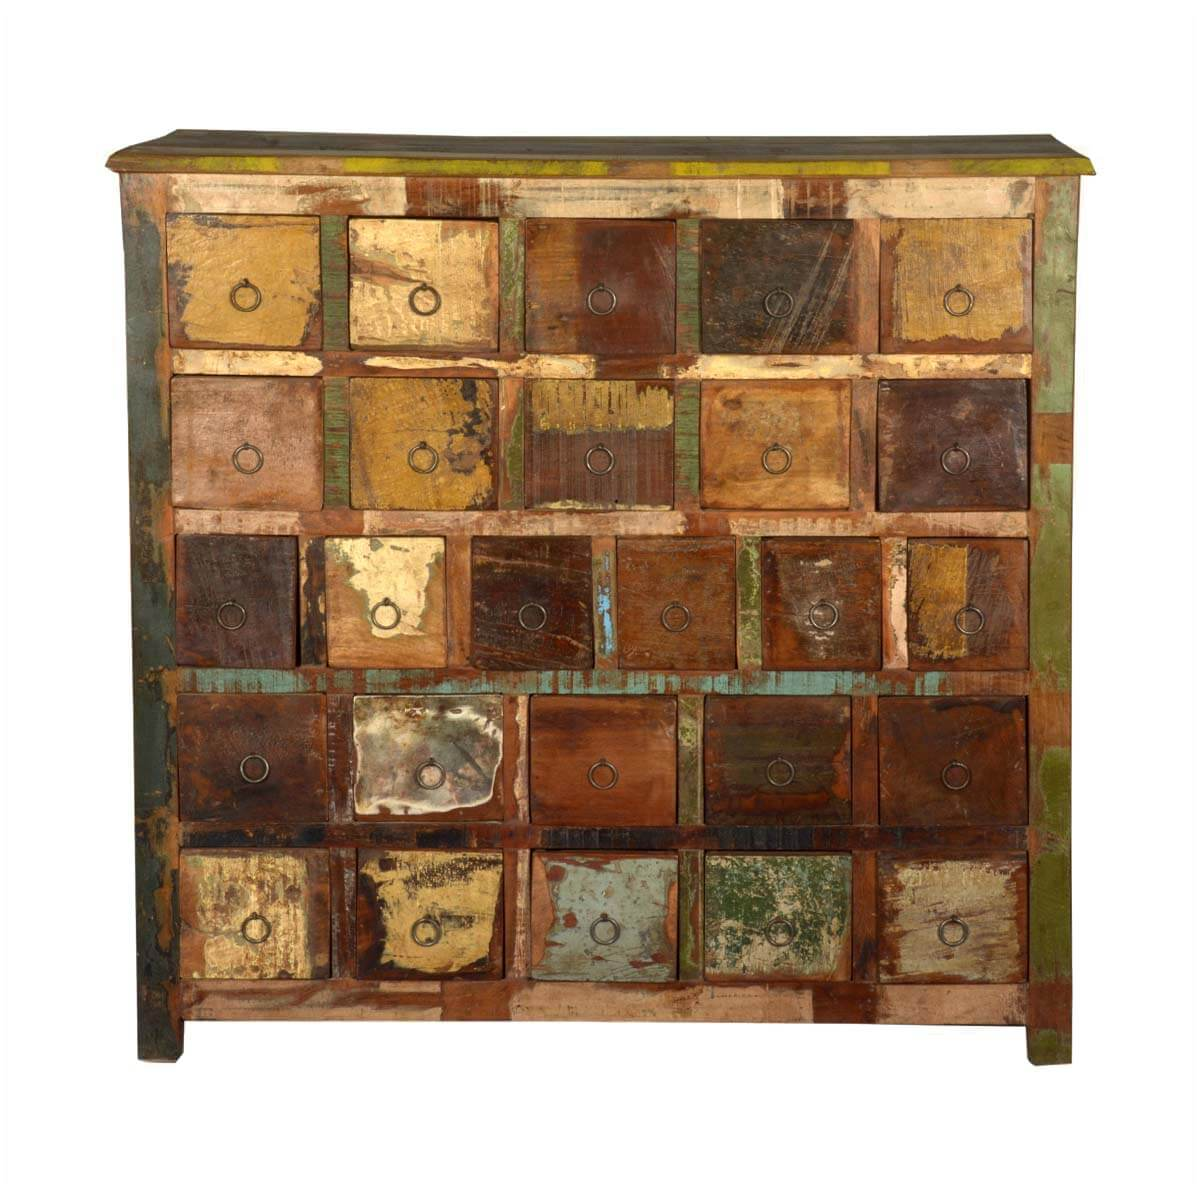 Rustic Reclaimed Wood Apothecary Storage Cabinet With 26